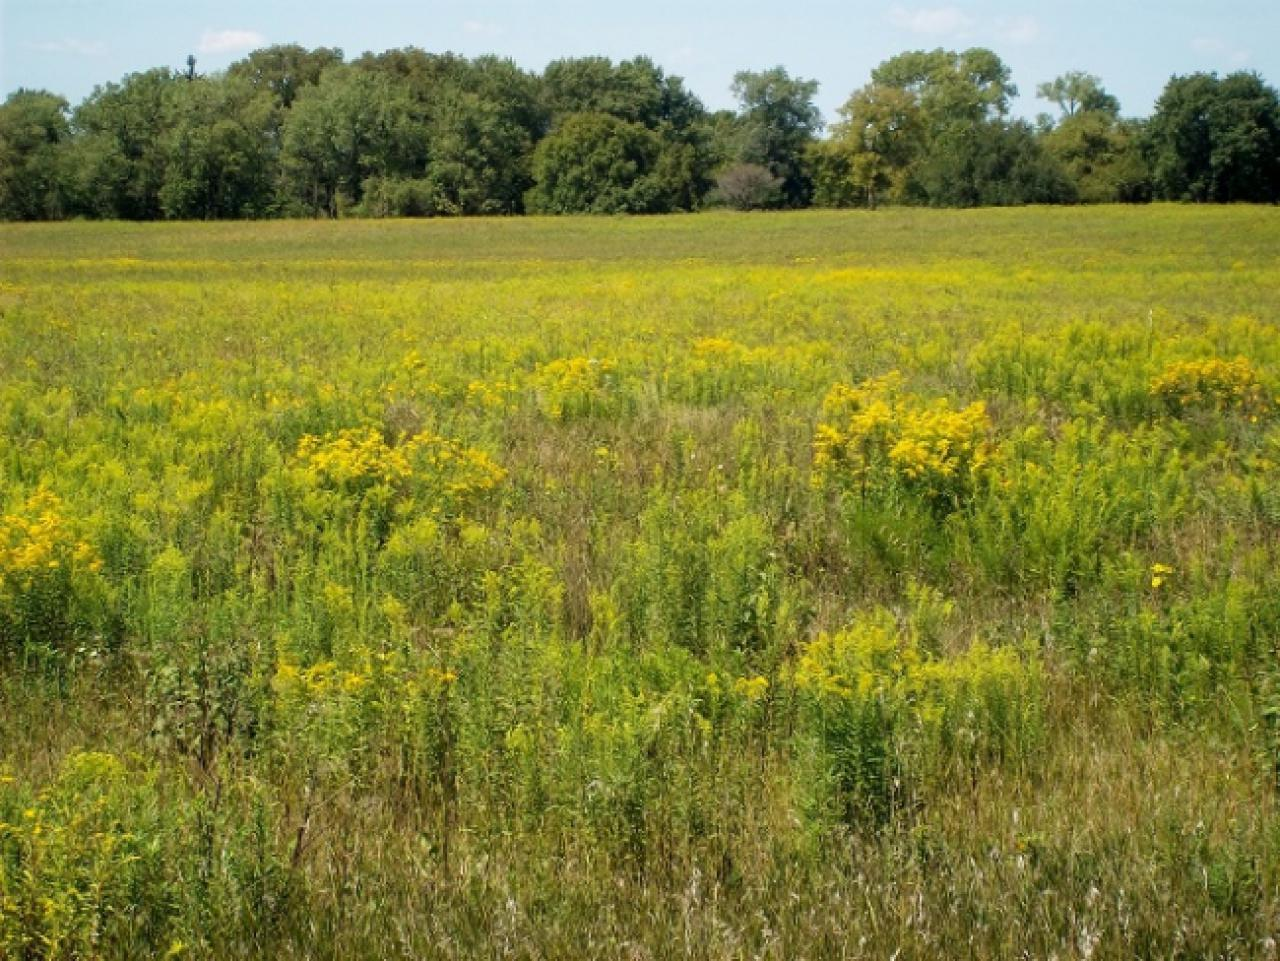 Native prairie plants are good for our waters, pollinators and, with the right incentives in place, farmers' incomes.